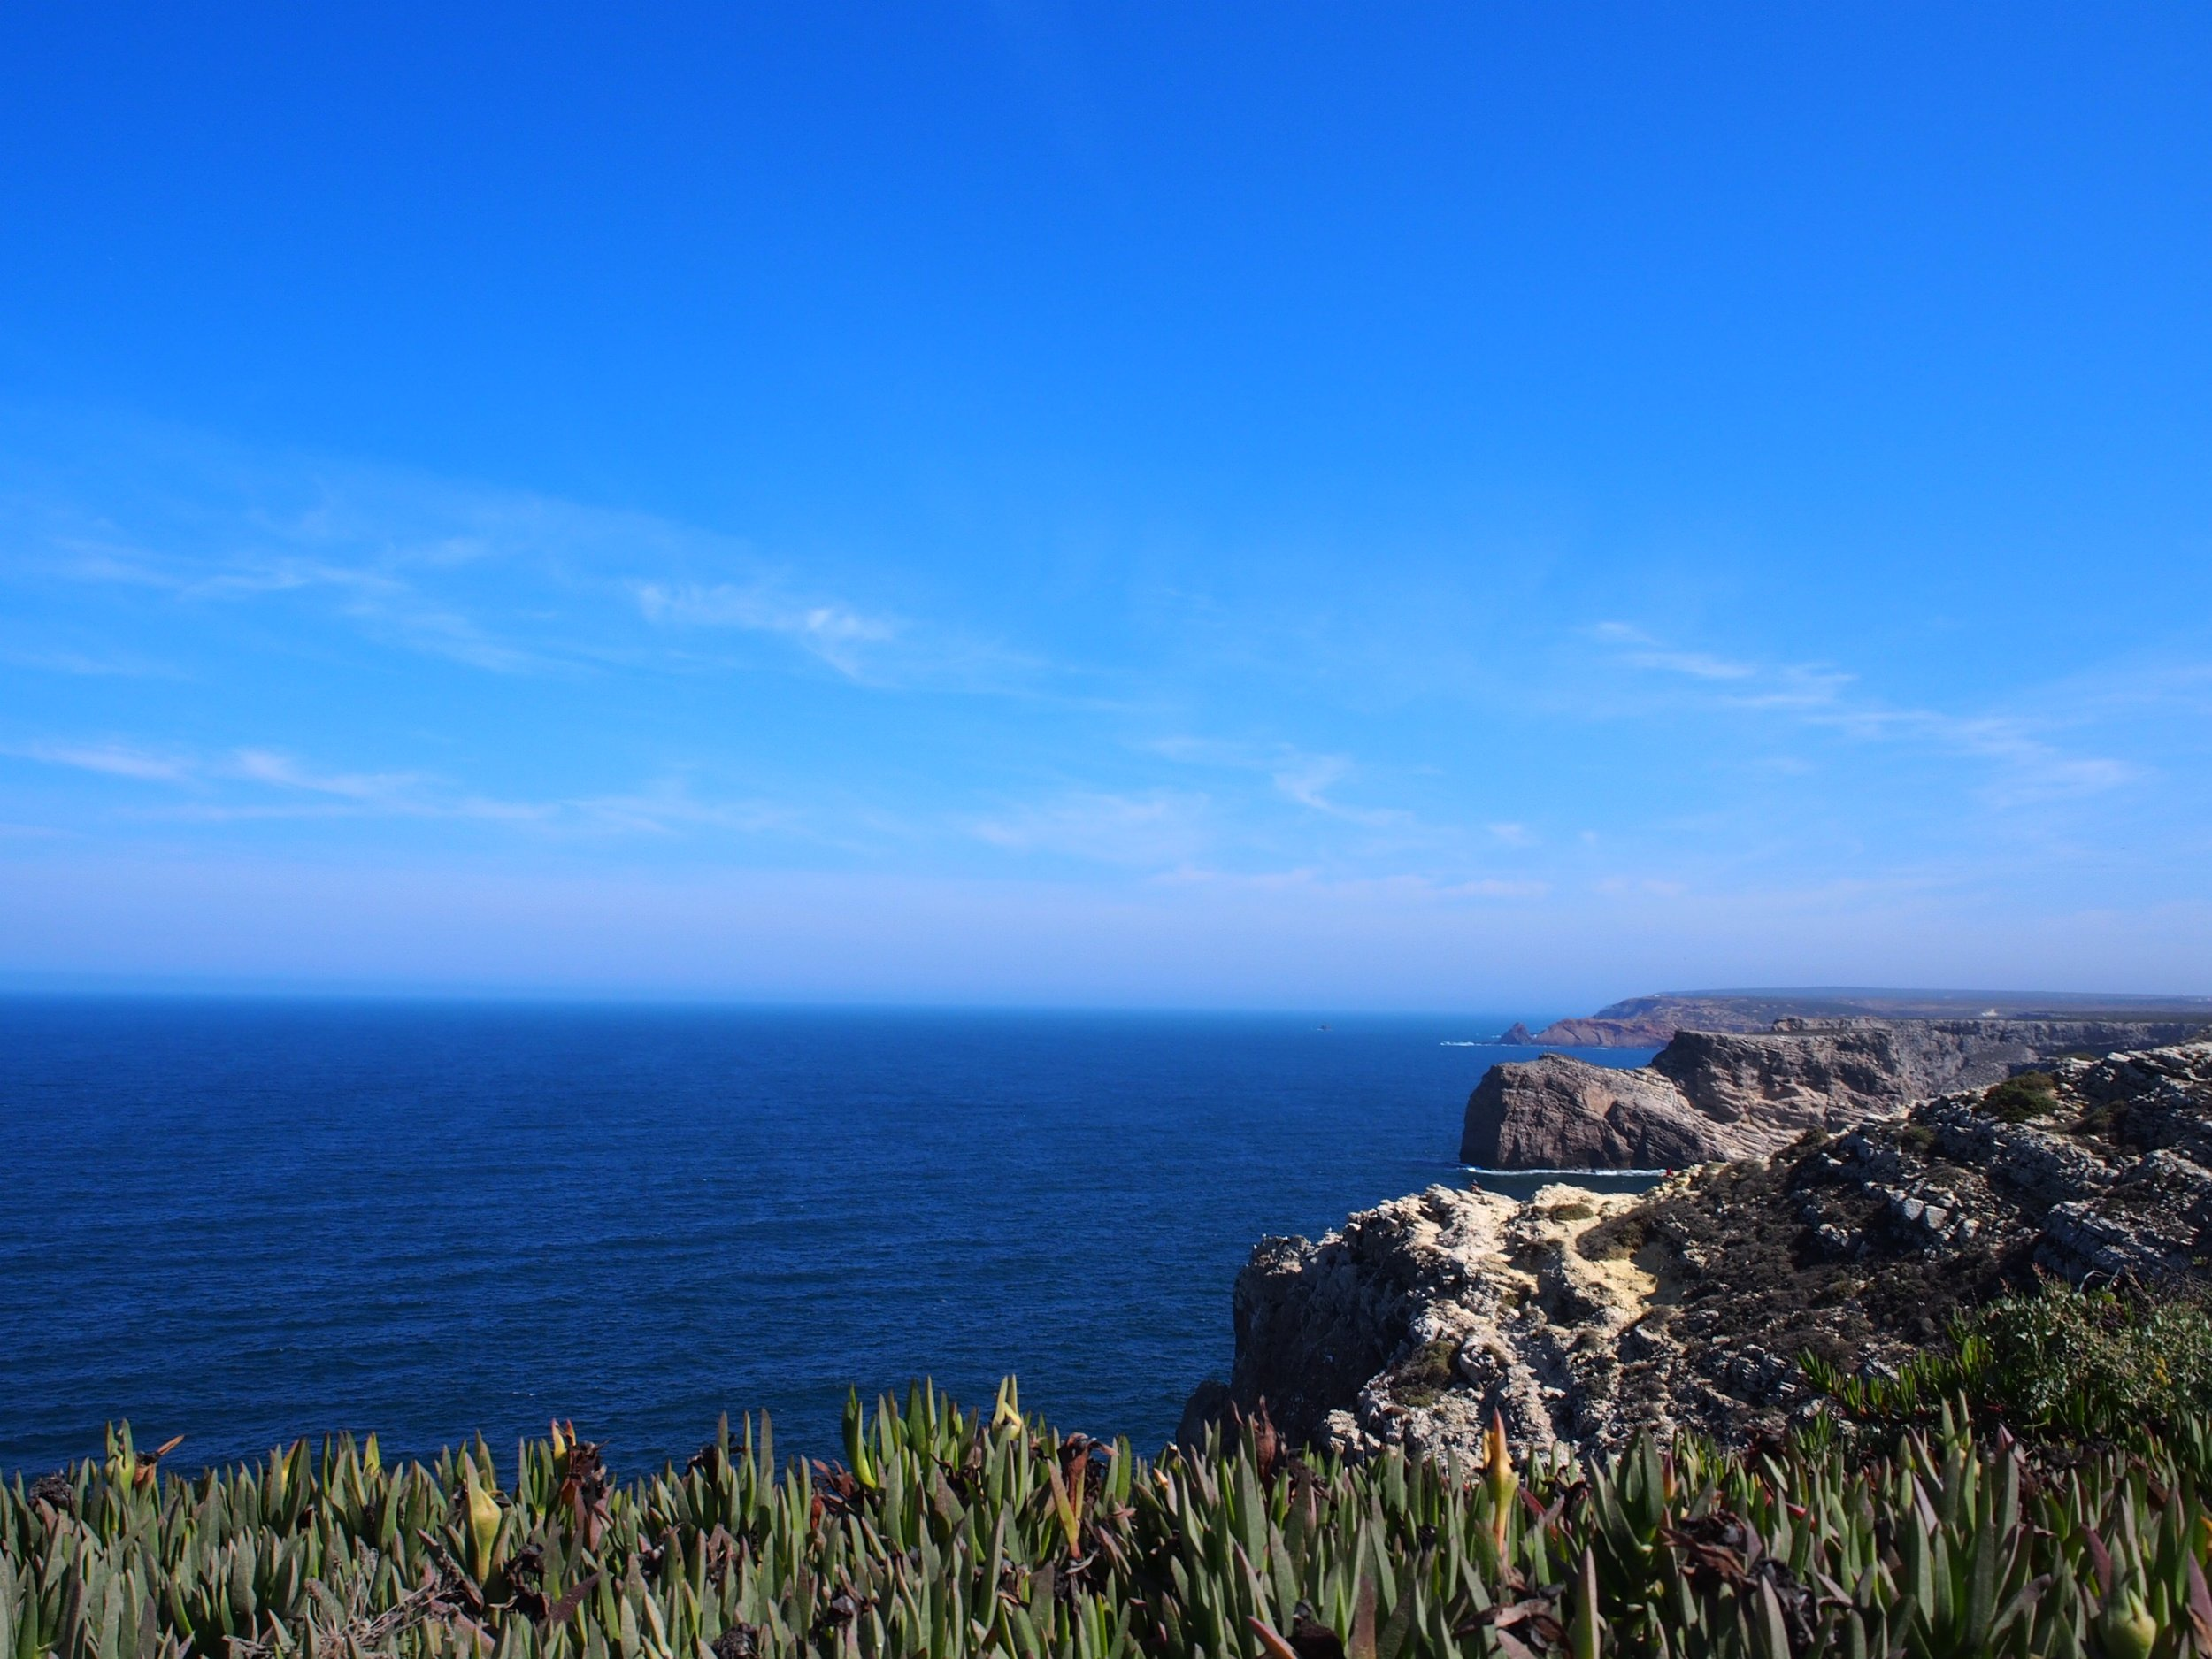 Looking up the coast from Cape Saint-Vincent